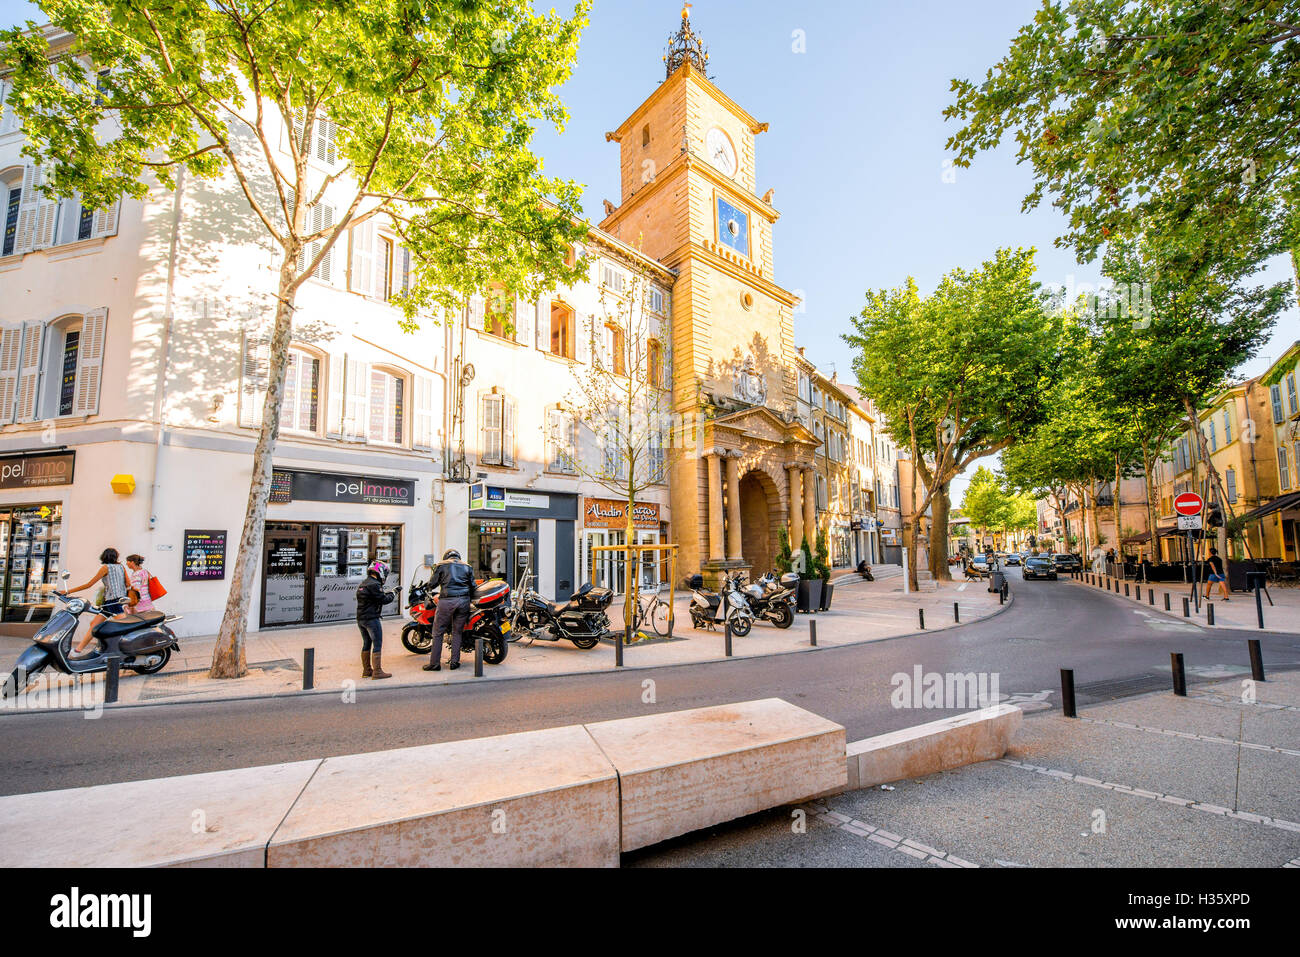 Tabac Salon De Provence Salon De Provence Photos And Salon De Provence Images Alamy